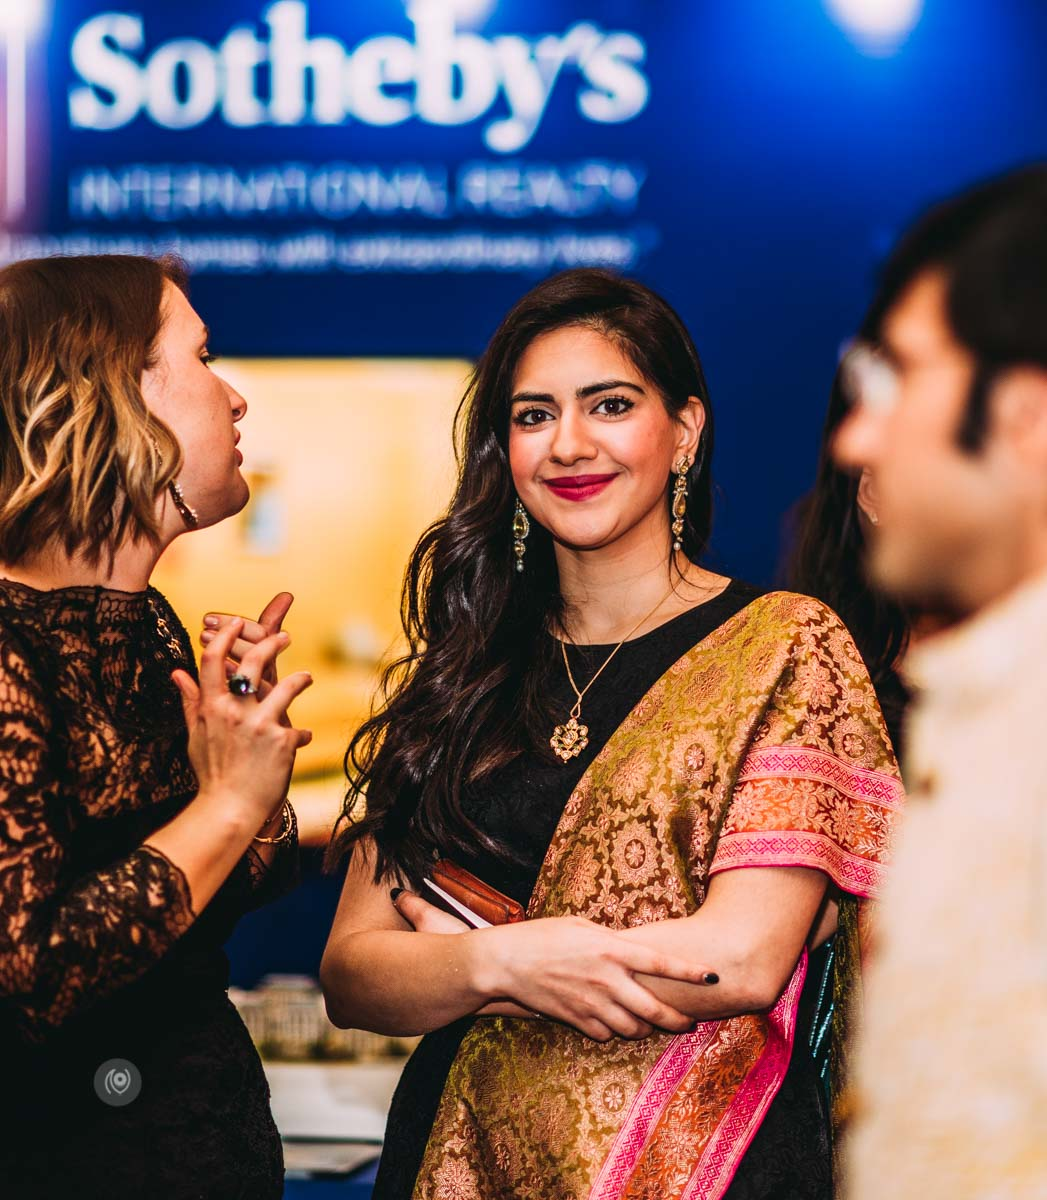 Experience Collector, Lifestyle, Lifestyle Blogger, Lifestyle Blogger India, Lifestyle Photographer India, Luxury Blogger, Luxury Blogger India, Luxury Brands, Luxury Photographer, Luxury Photographer India, Naina Redhu, Naina.co, Professional Photographer, Visual Storyteller, Visual Storyteller for Luxury Brands, Influencer, Luxury Influencer, Lifestyle Influencer, Photography Influencer, Brand Storyteller, Visual Storyteller, EyesForLuxury, Sothebys, Sothebys India, The Leela Palace, Chanakyapuri, The Leela Palace New Delhi, #SothebysIndia, #SothebysContemporary, Art Auction, Art Exhibition, Cocktails, Panel Discussion, Art and Fashion, Paintings, Raja Ravi Varma, Client, Harpers Bazaar, Bazaar India, Nonita Kalra, PR Pundit